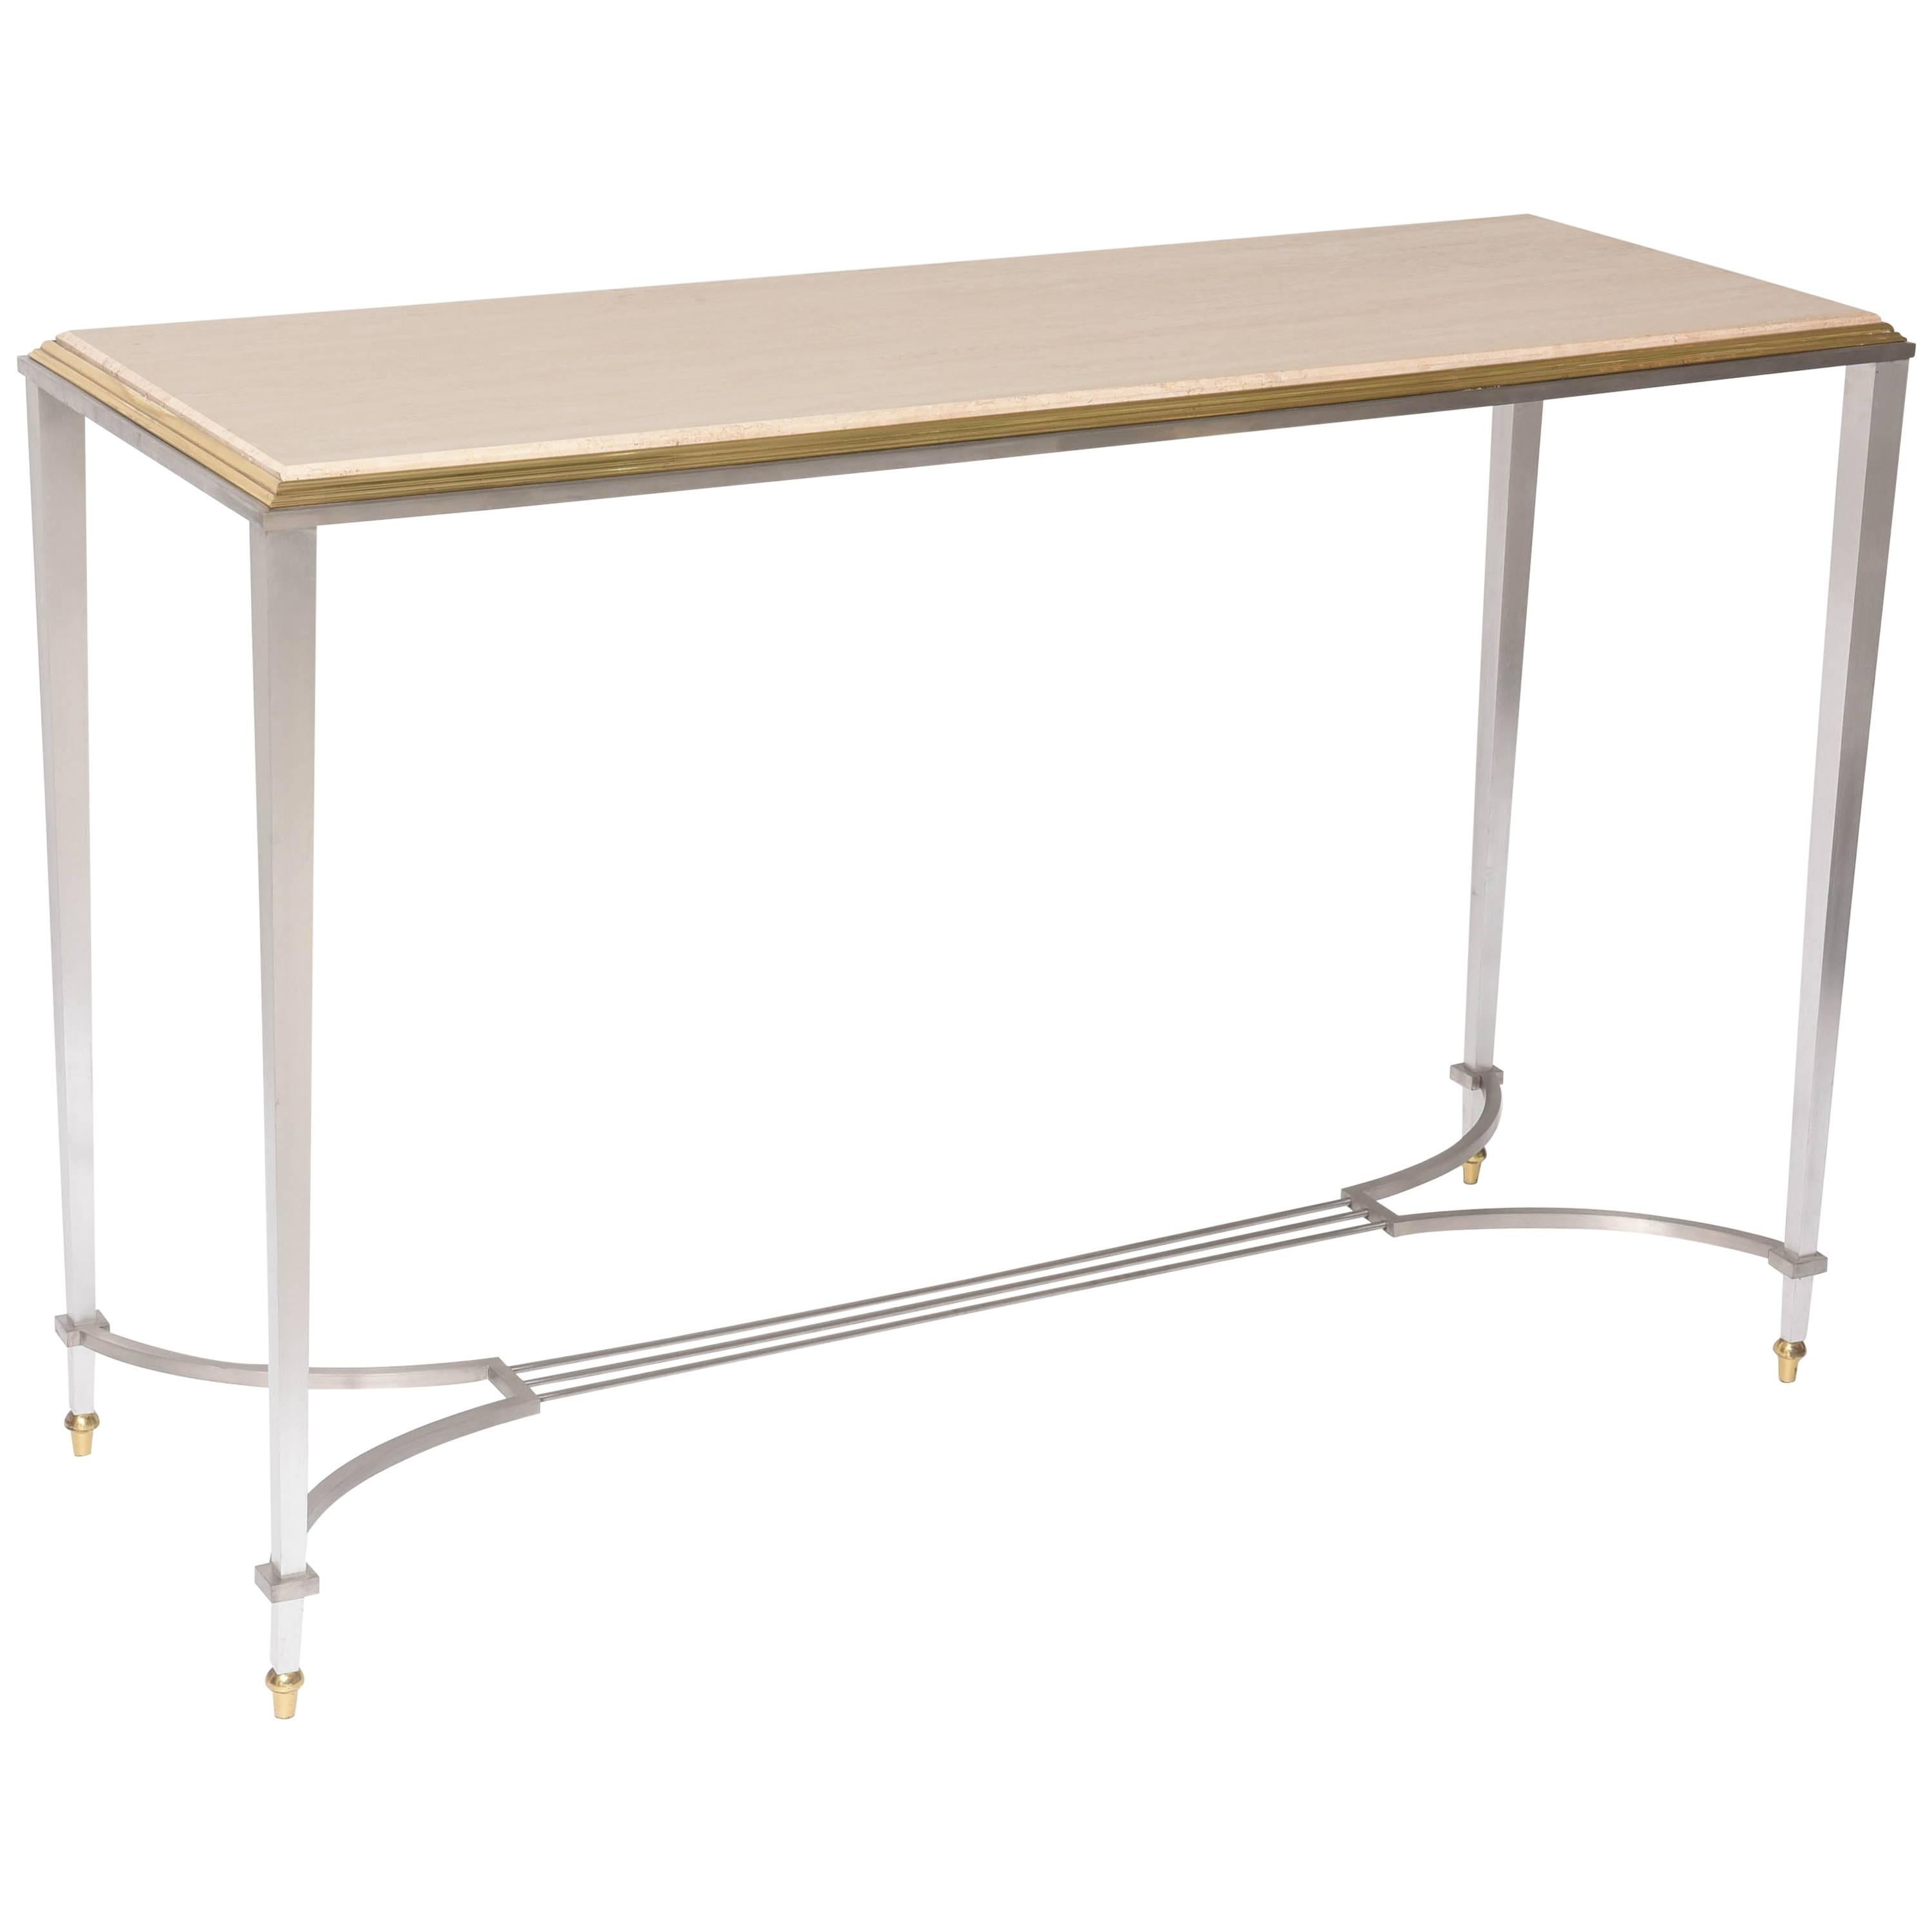 Console Table in Travertine, Steel and Brass